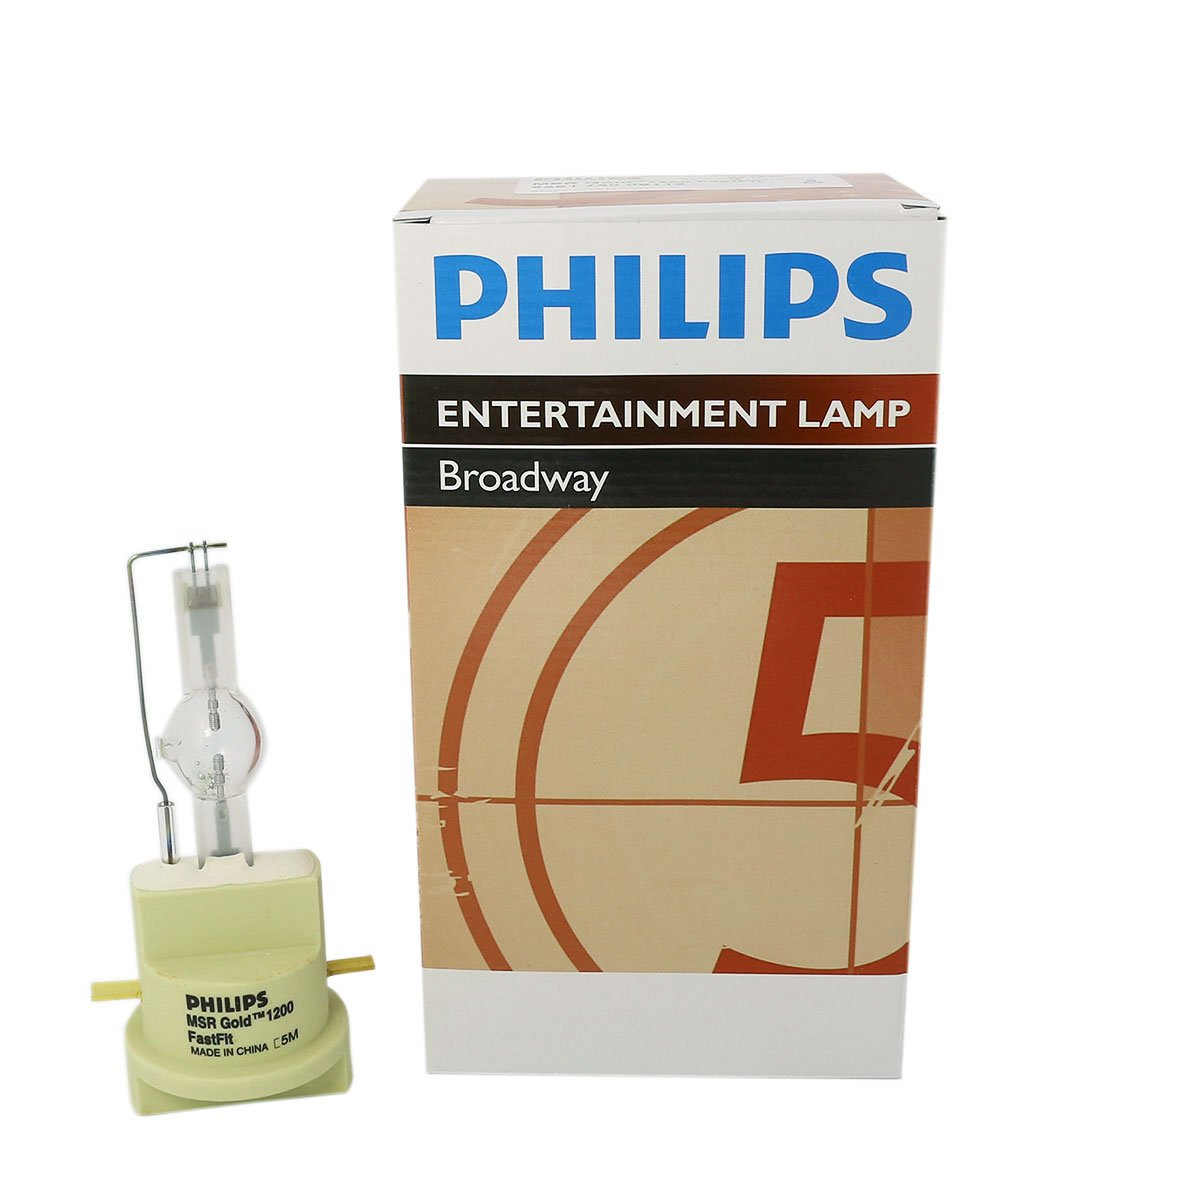 Philips MSR Gold 1200 FastFit 1200W AC Lamp for Touring/Stage Lighting